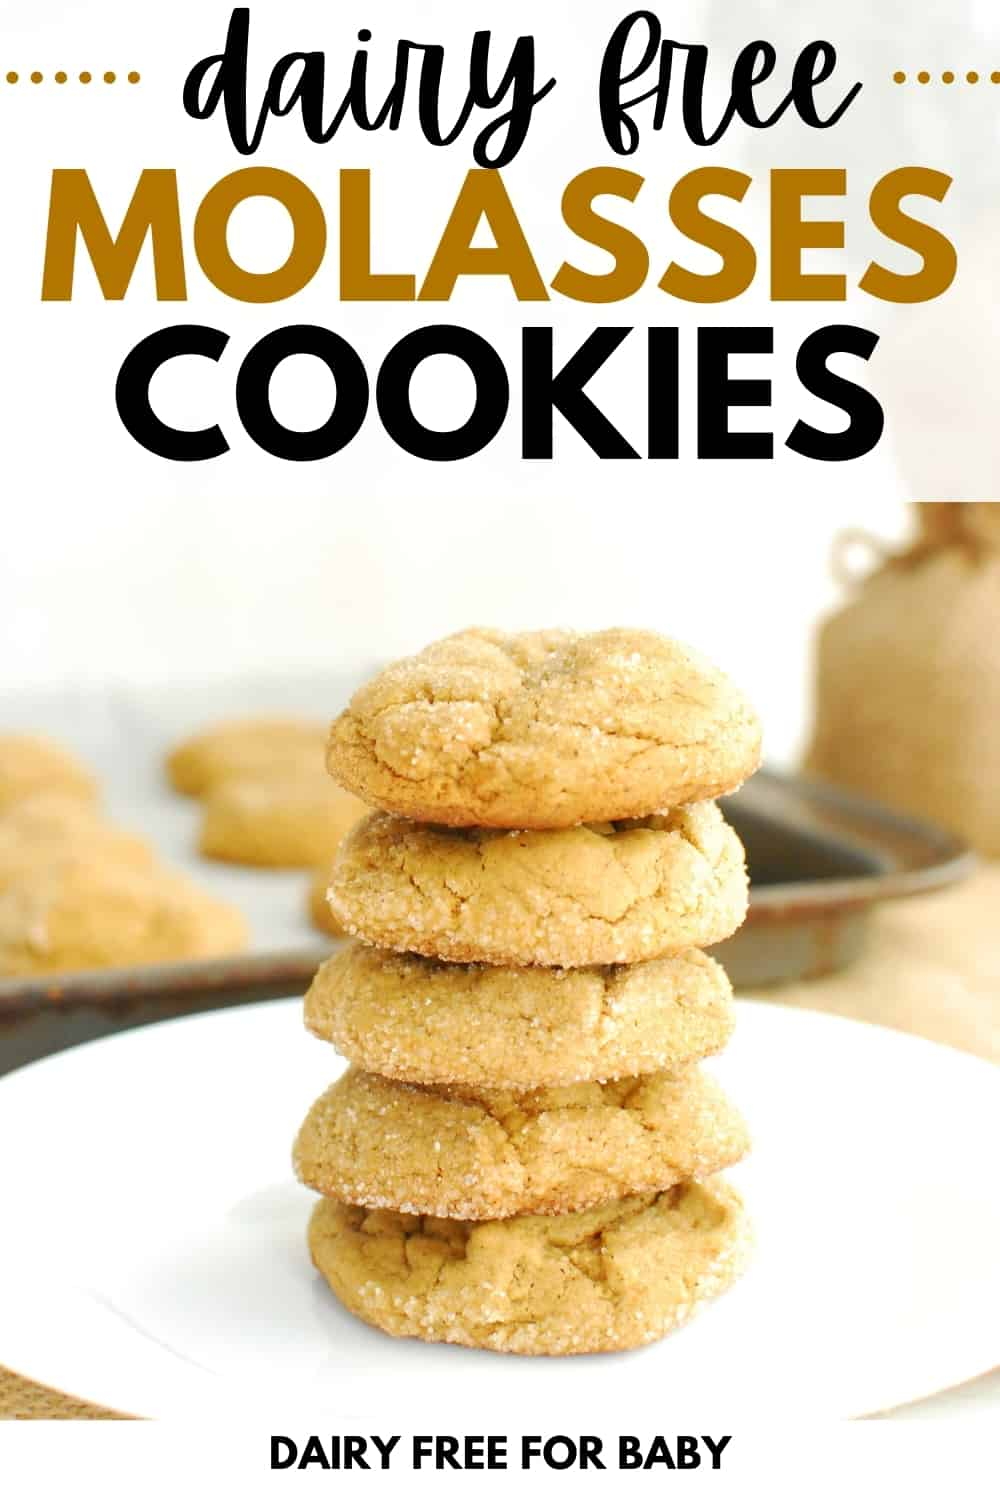 several dairy free molasses cookies stacked on top of eachother